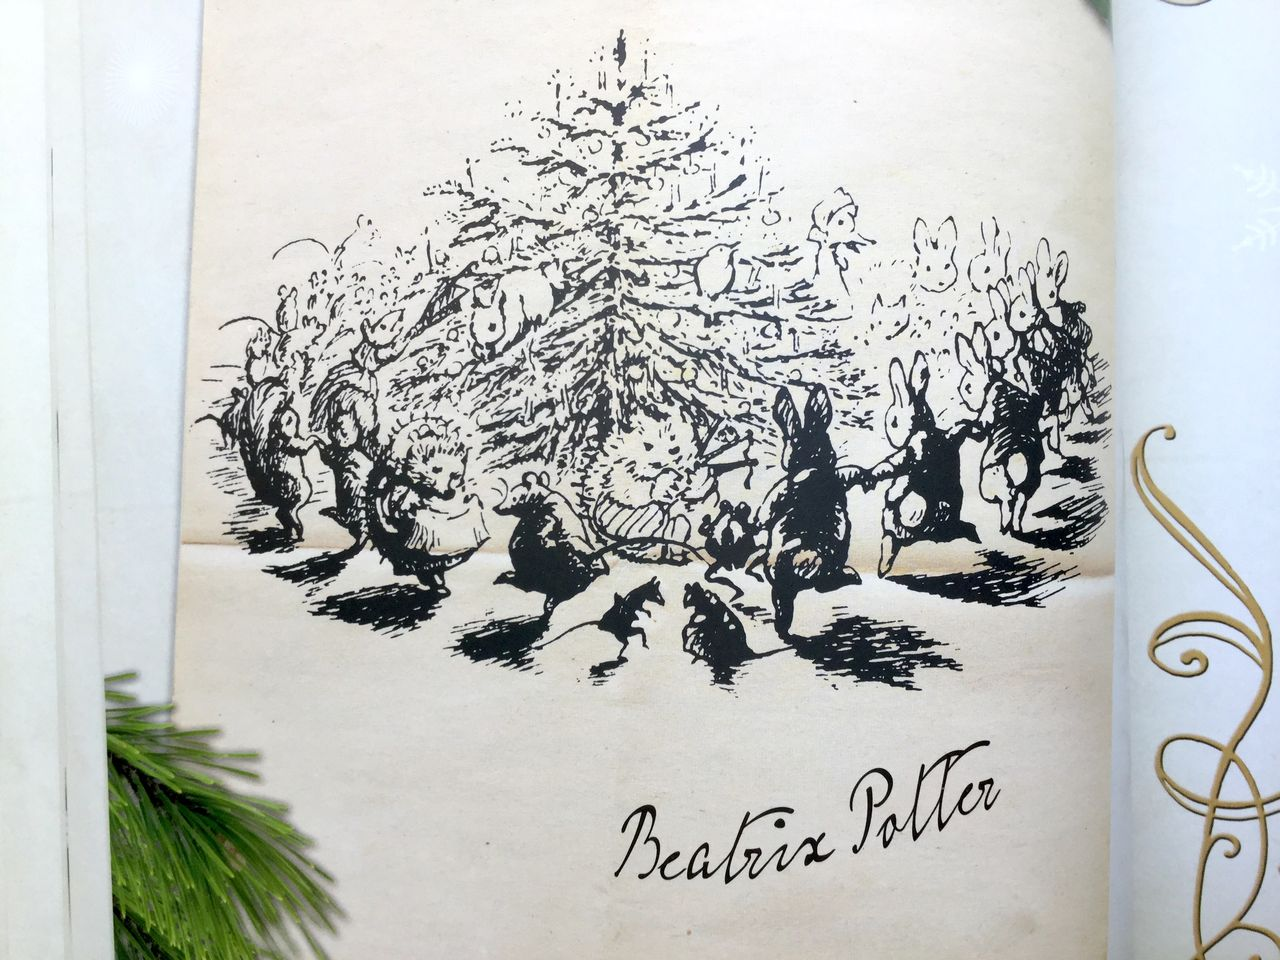 Beatrix Potter, La raccolta di Natale di Peter coniglio, Sperling&Kupfer